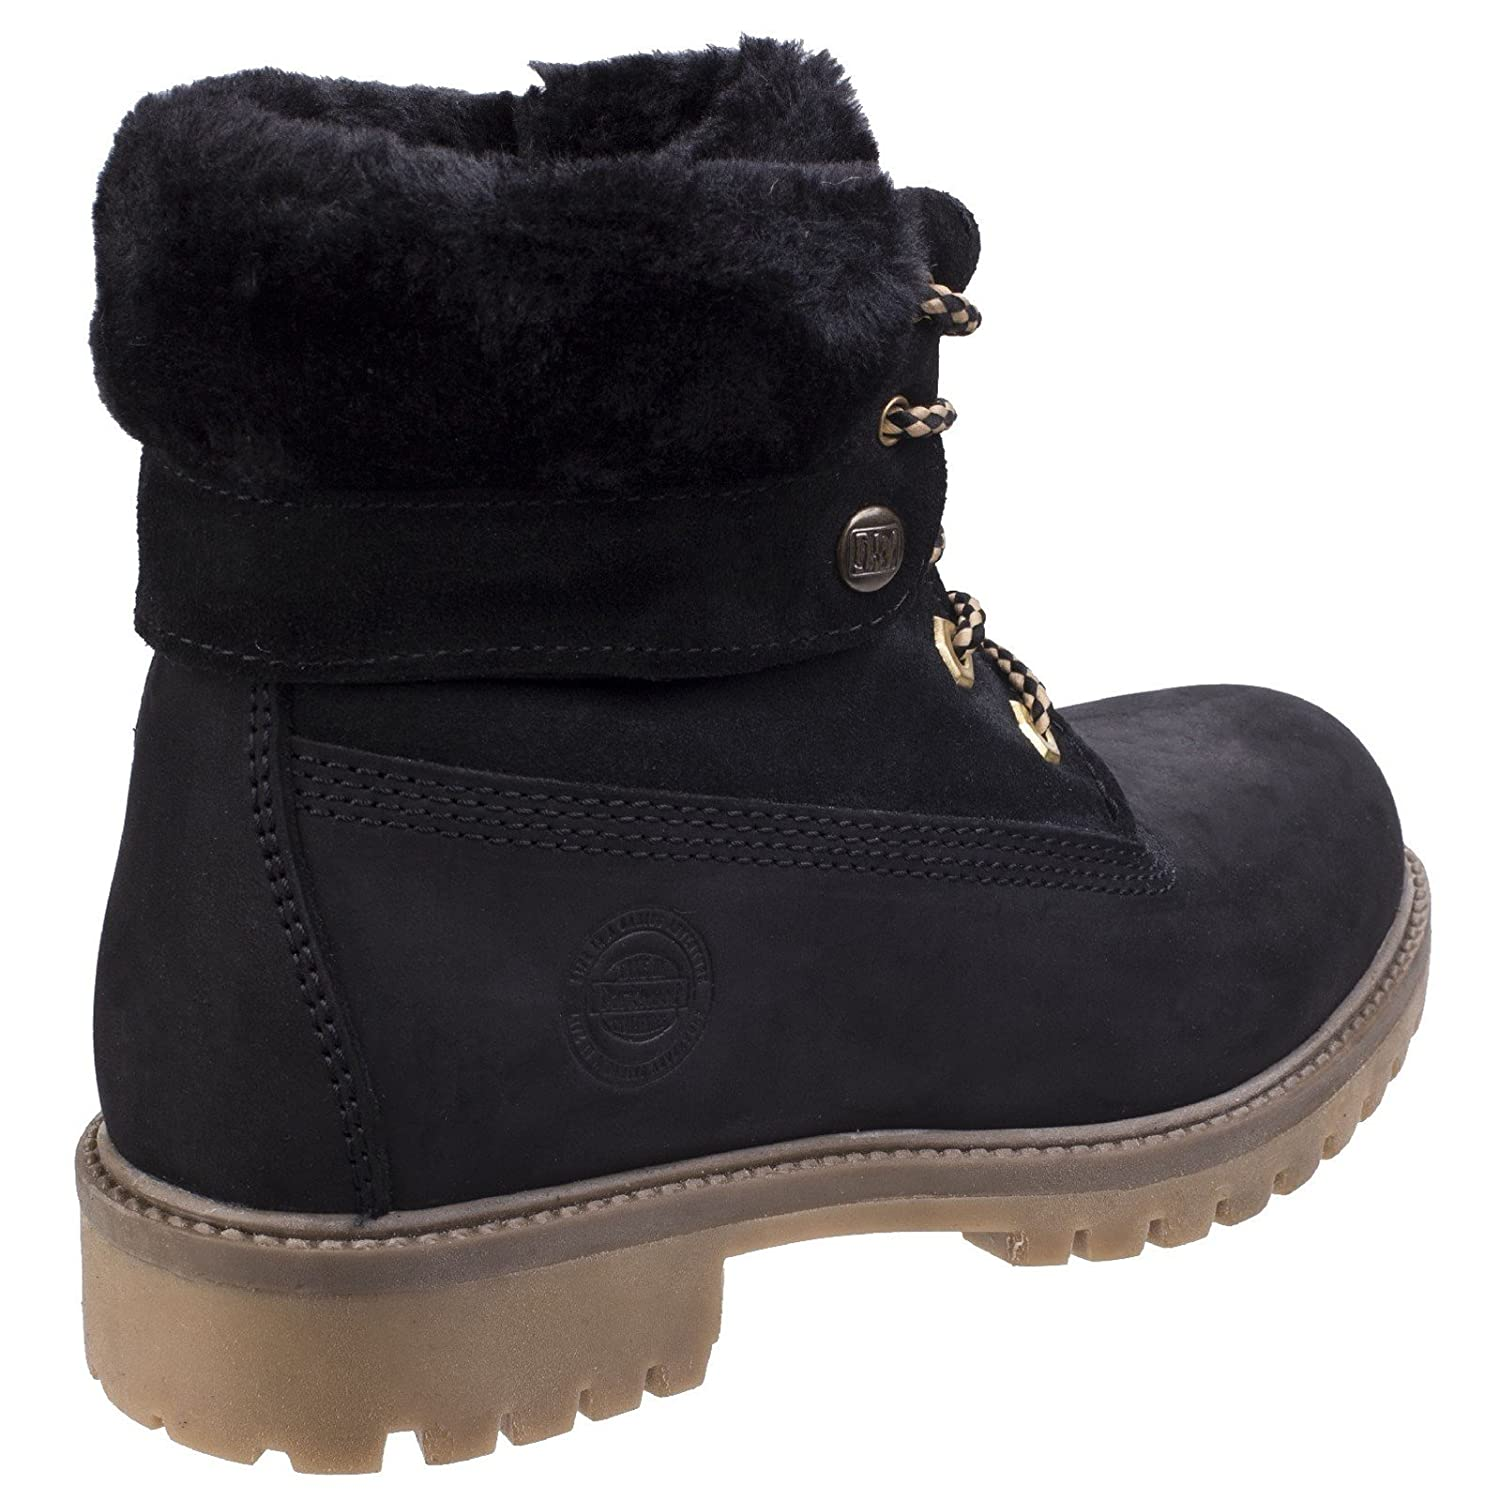 f207d7557bf6 Darkwood Womens Ladies Walnut Water Resistant Warm Walking Ankle Boots   Amazon.co.uk  Sports   Outdoors